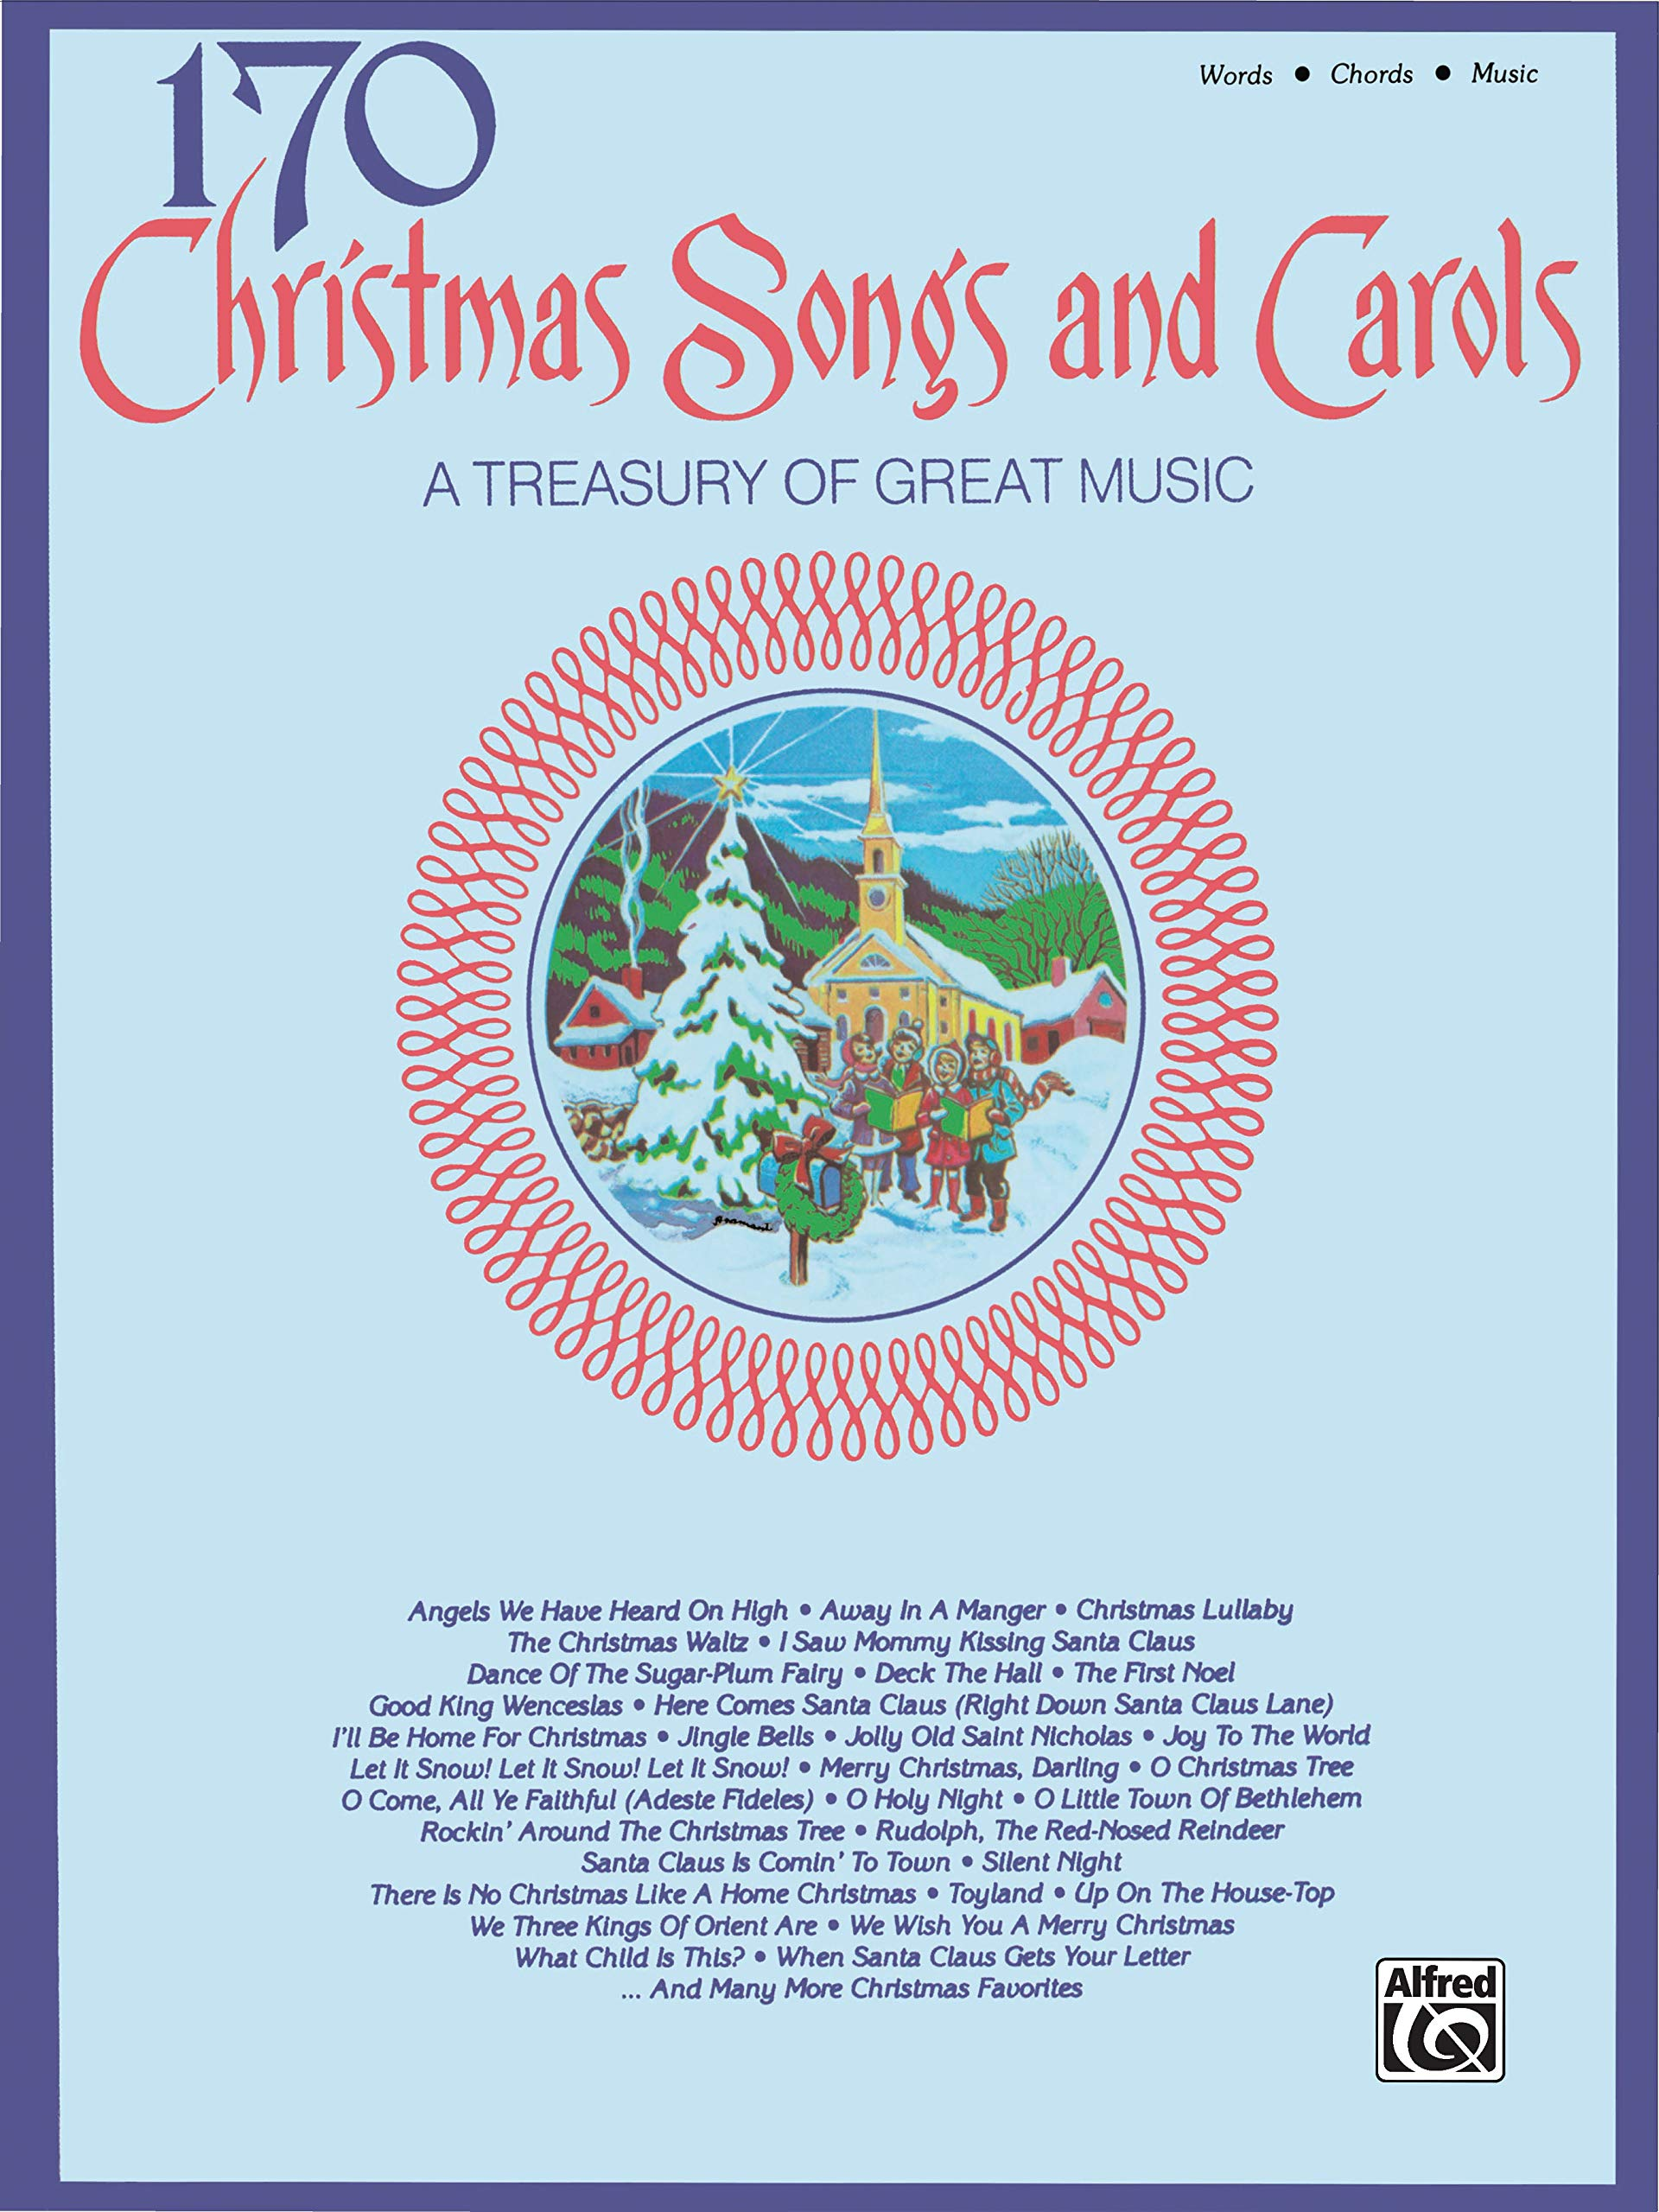 170 Christmas Songs And Carols Piano Vocal Chords Alfred Music 9780769264363 Amazon Com Books